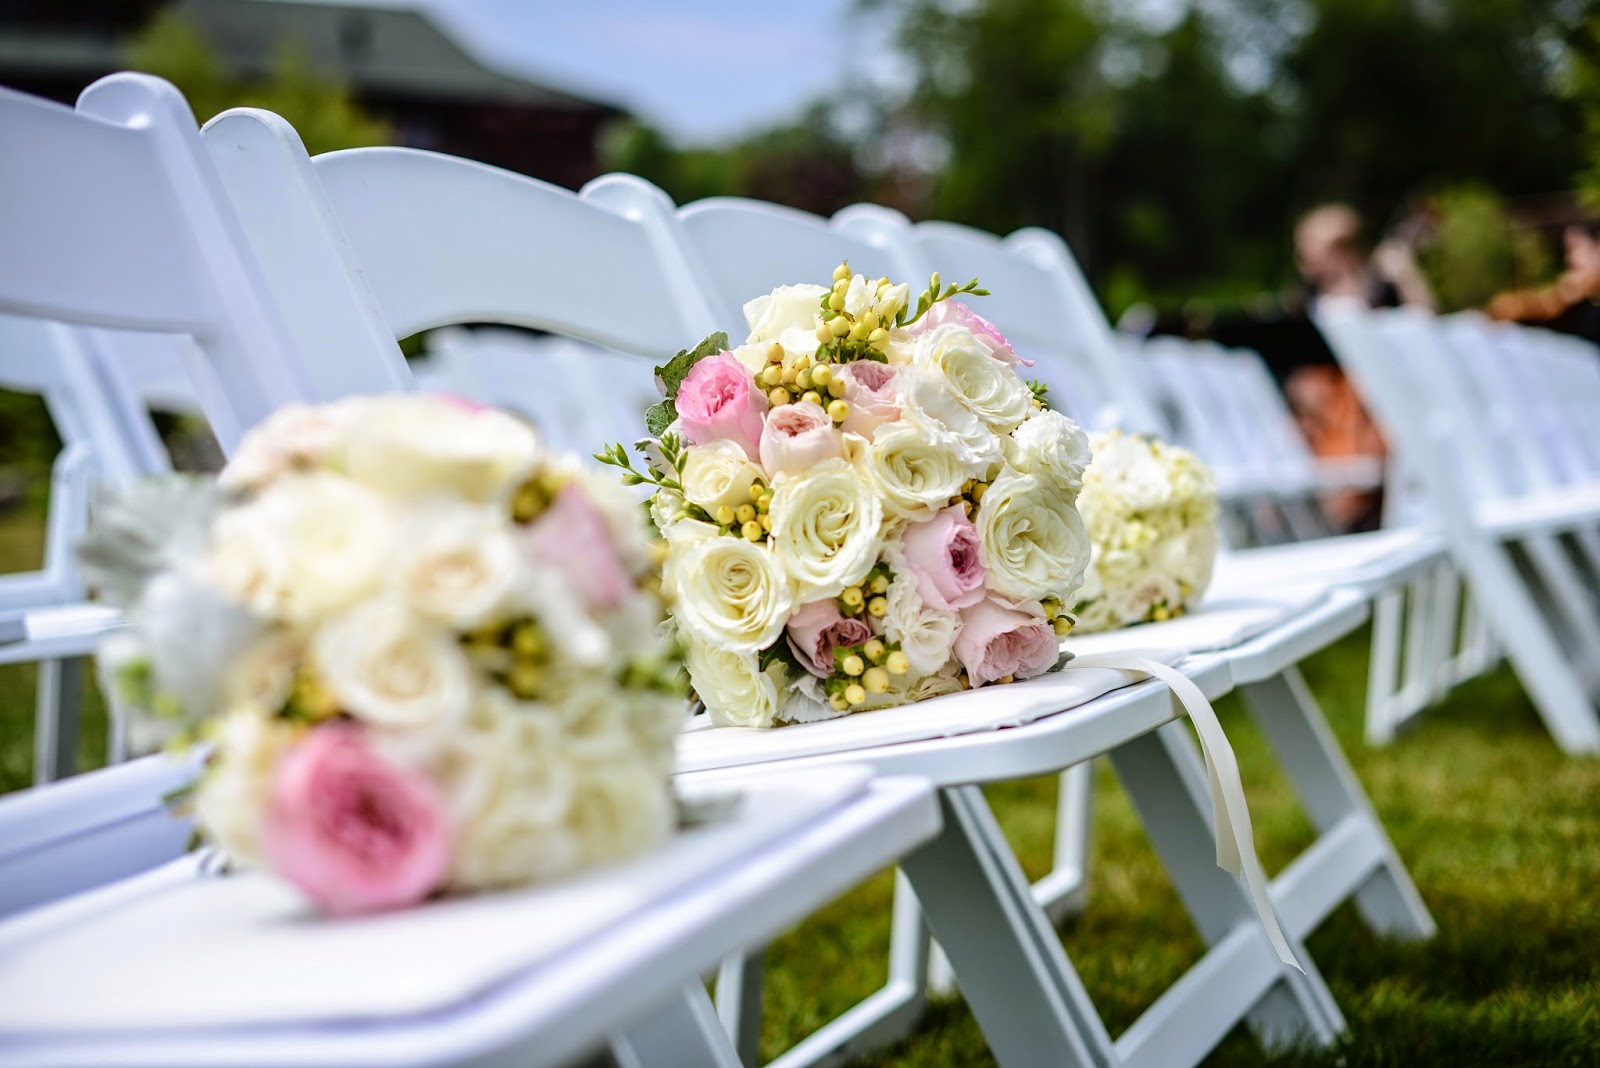 Lake Placid Wedding - The Whiteface Lodge Wedding - Blush and Cream Garden Rose Bride's Bouquet - Upstate NY Wedding - Splendid Stems Floral Designs